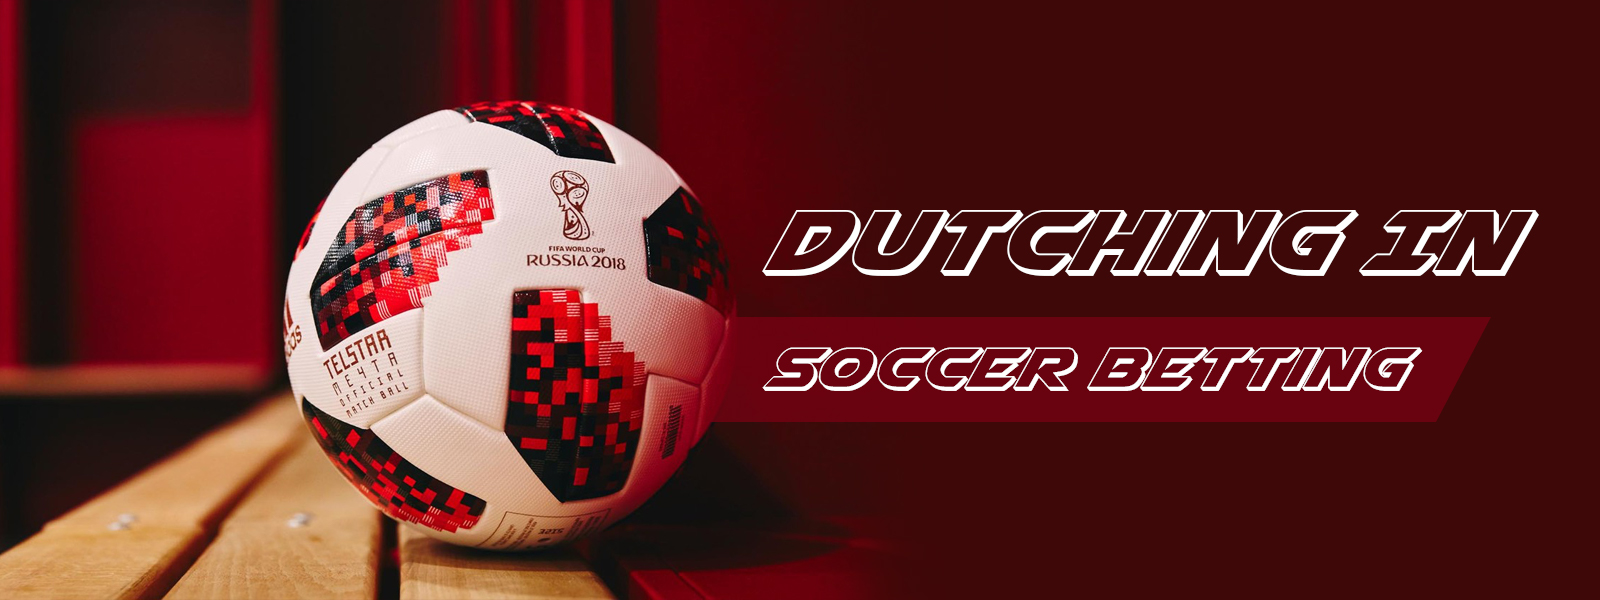 What It Means For Dutching In Soccer Betting?